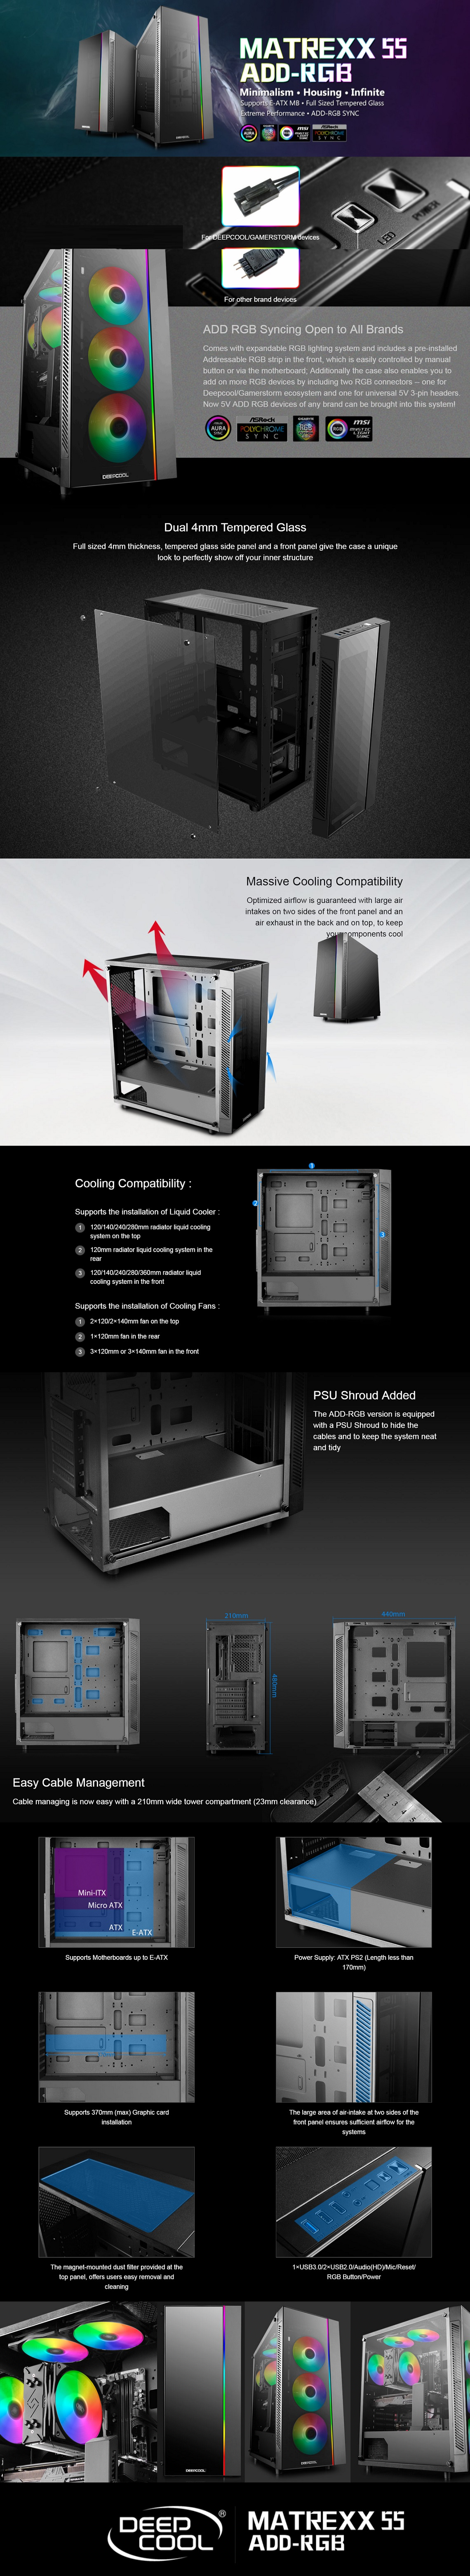 Deepcool MATREXX 55 ADD-RGB 3F Full Sized Tempered Glass Case with 3x RGB Fans